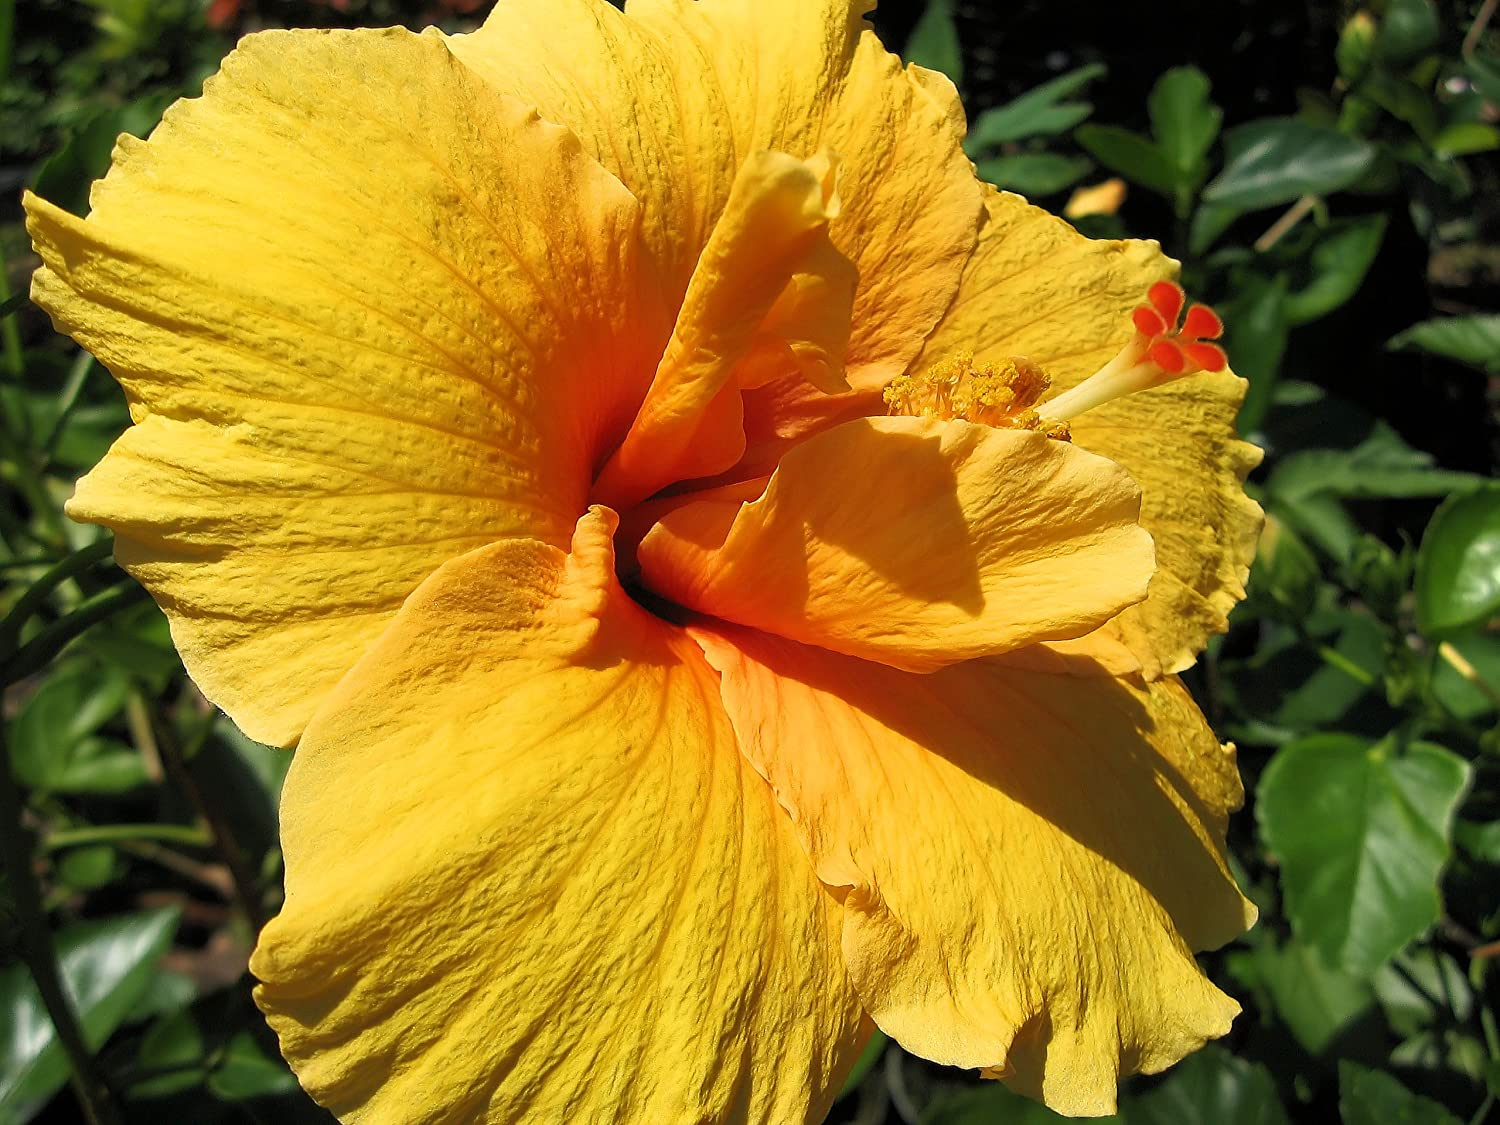 Amazon joann tropical hibiscus live plant large golden orange amazon joann tropical hibiscus live plant large golden orange red single sometimes crested flowers starter size 4 inch pot emeralds tm garden izmirmasajfo